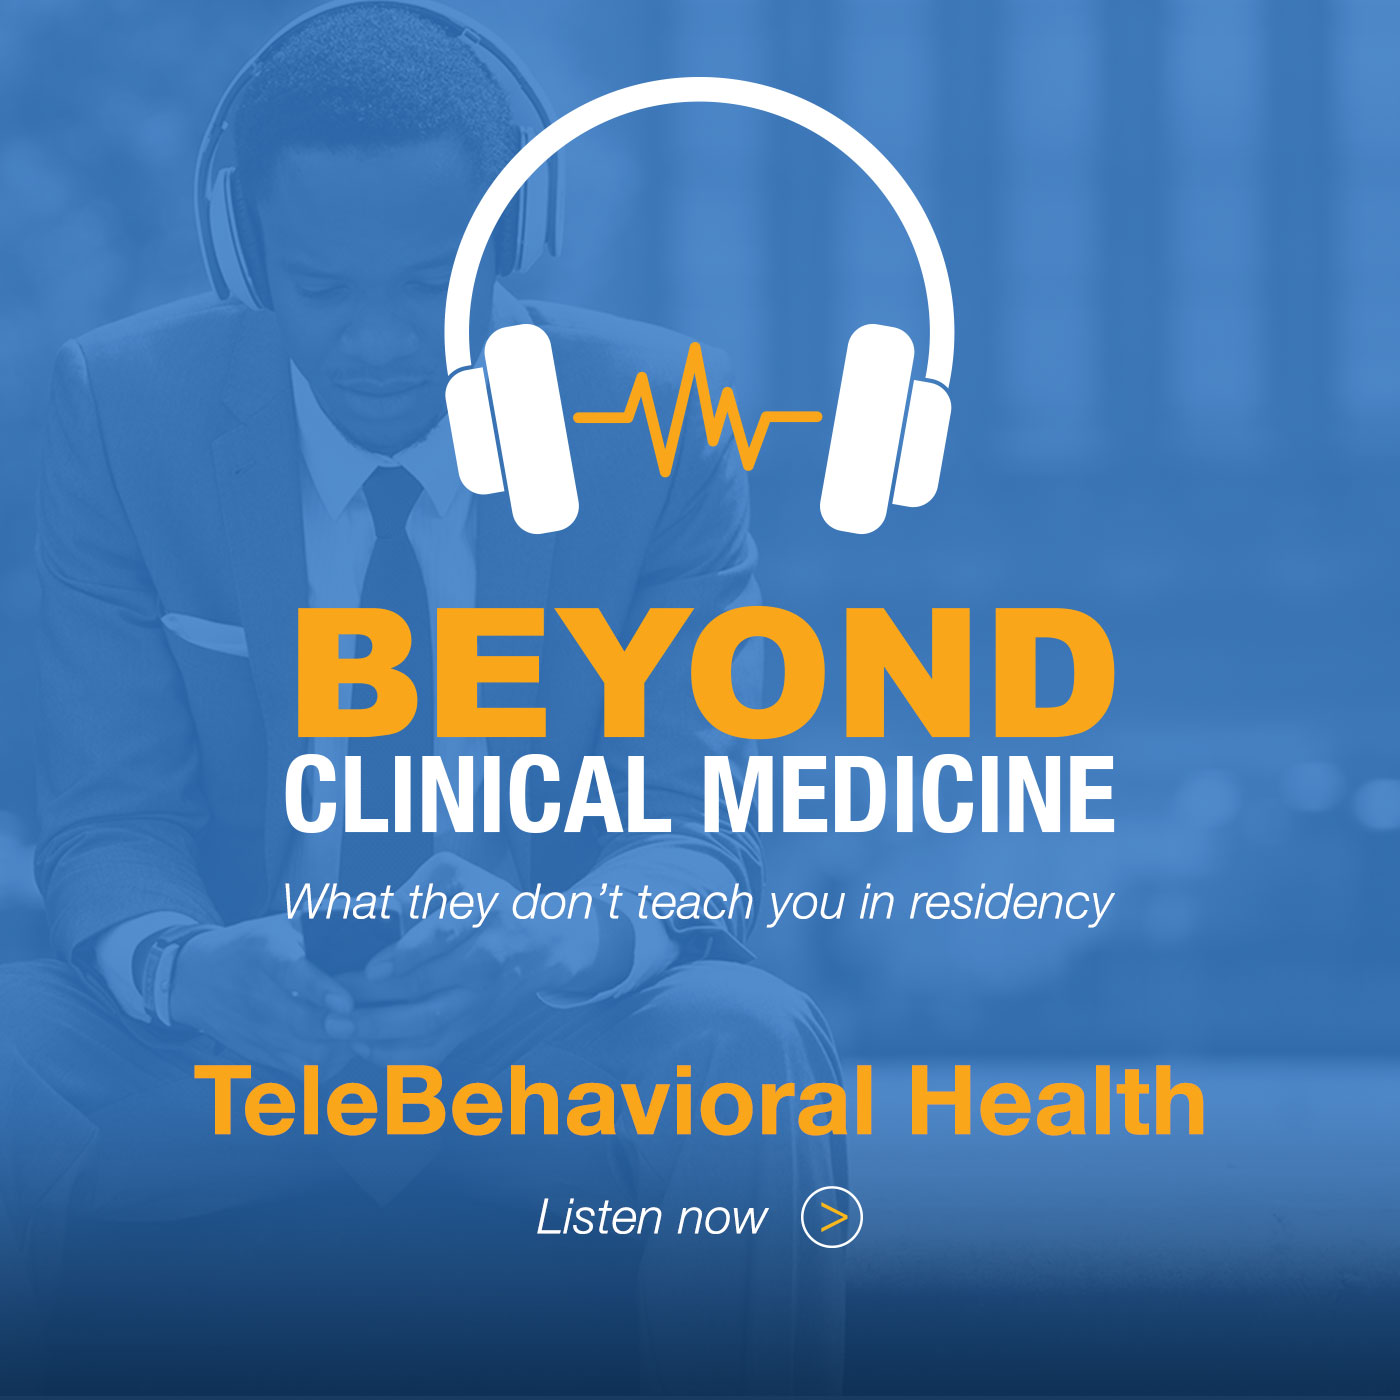 Beyond Clinical Medicine Episode 5: TeleBehavioral Health - Dr. James Horst